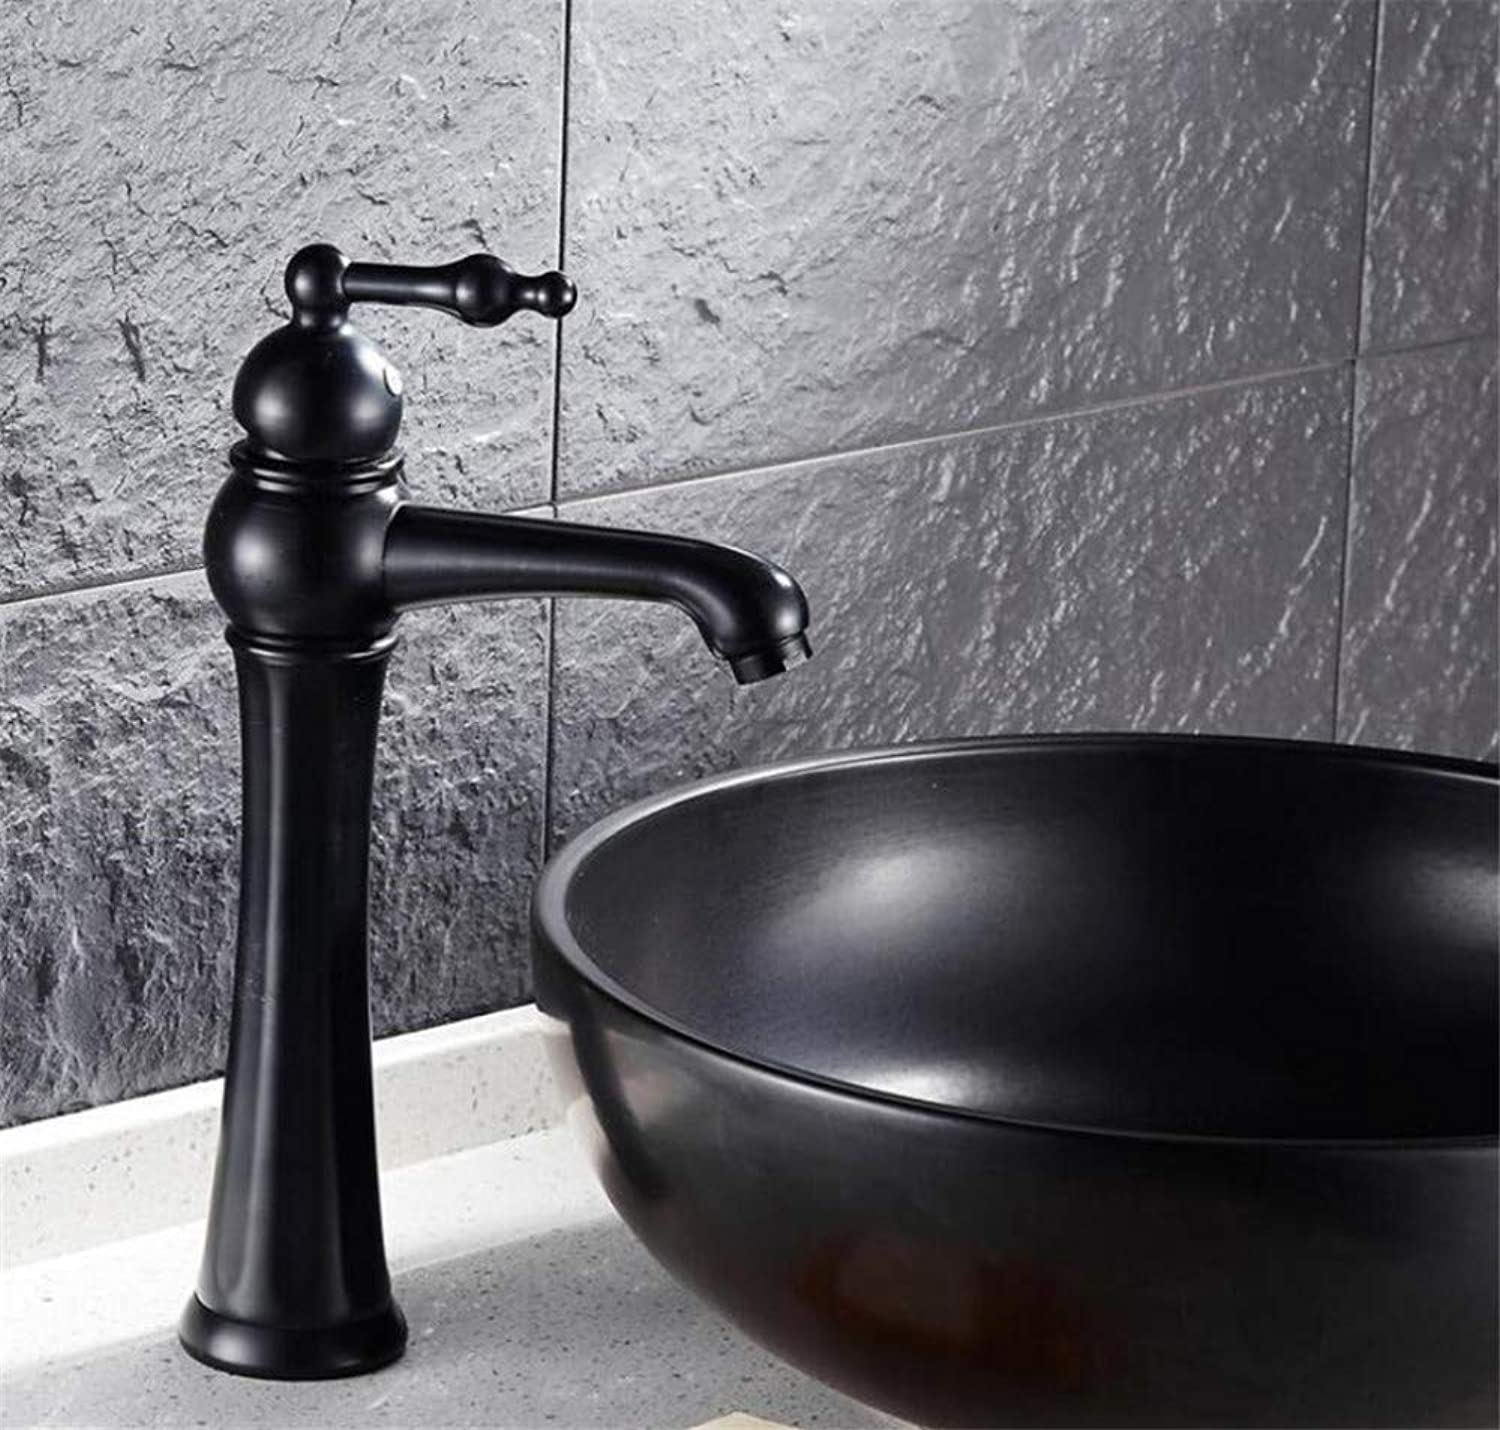 Bathroom Sink Basin Lever Mixer Tap Simple Basin Faucet with Long Handle Lifting On The Faucet Platform of Copper-European Type Black-Bronze Retro-Facing Basin